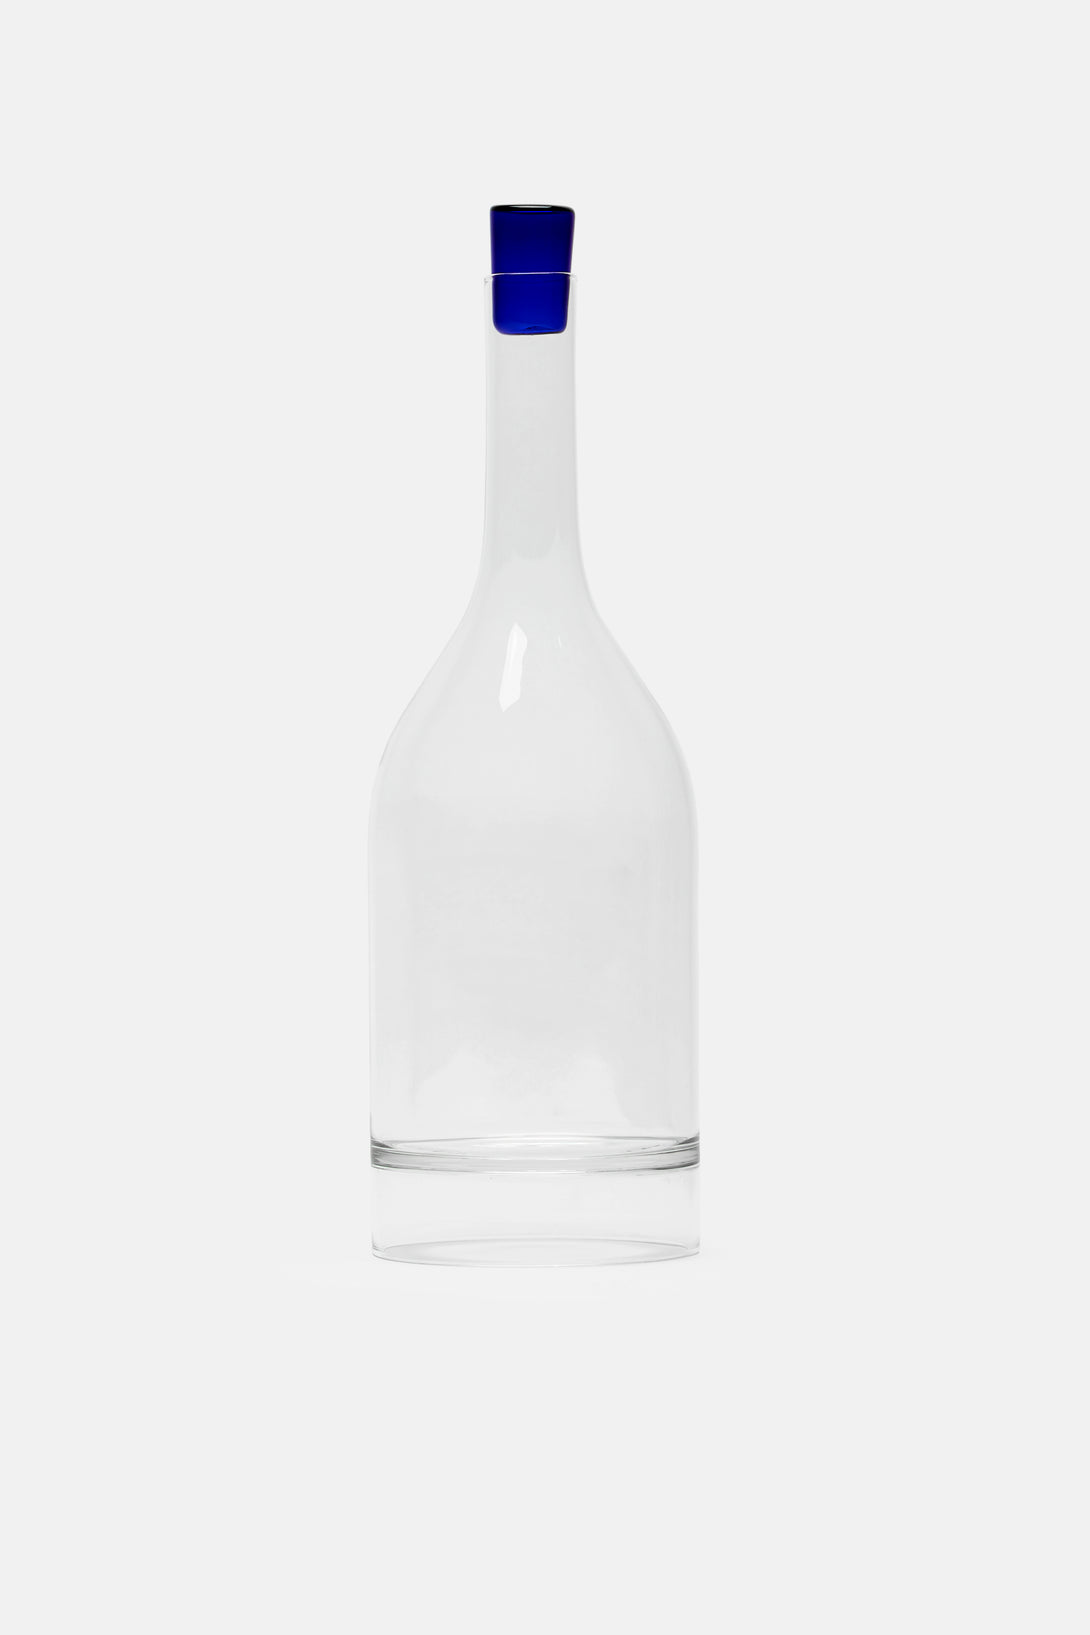 Decanter with Blue Top